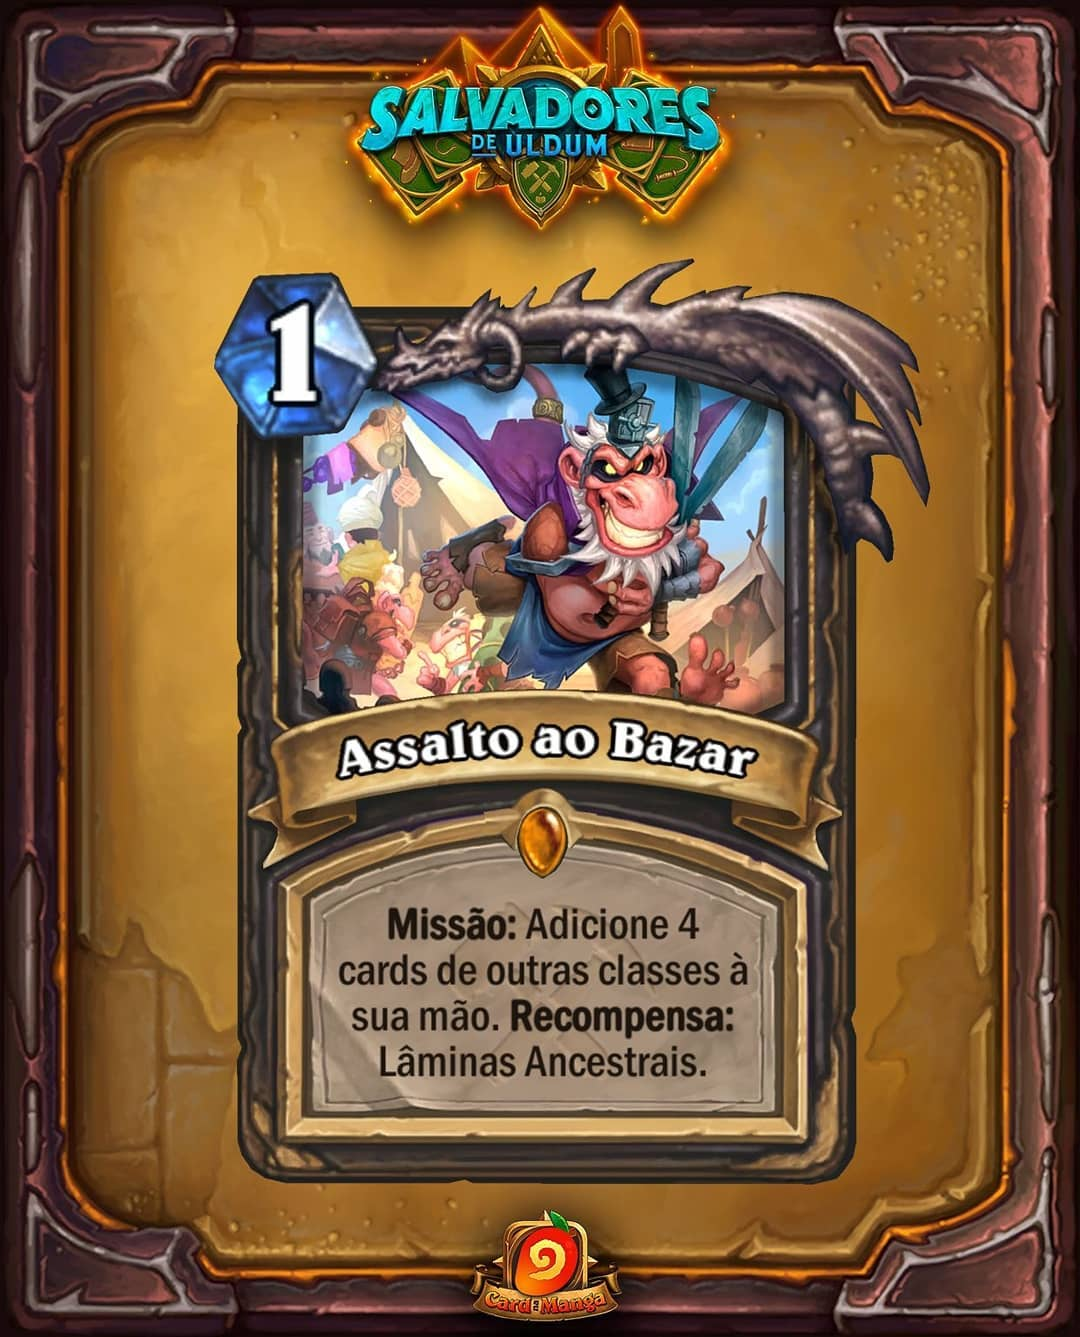 Assalto ao Bazar - Card Reveal